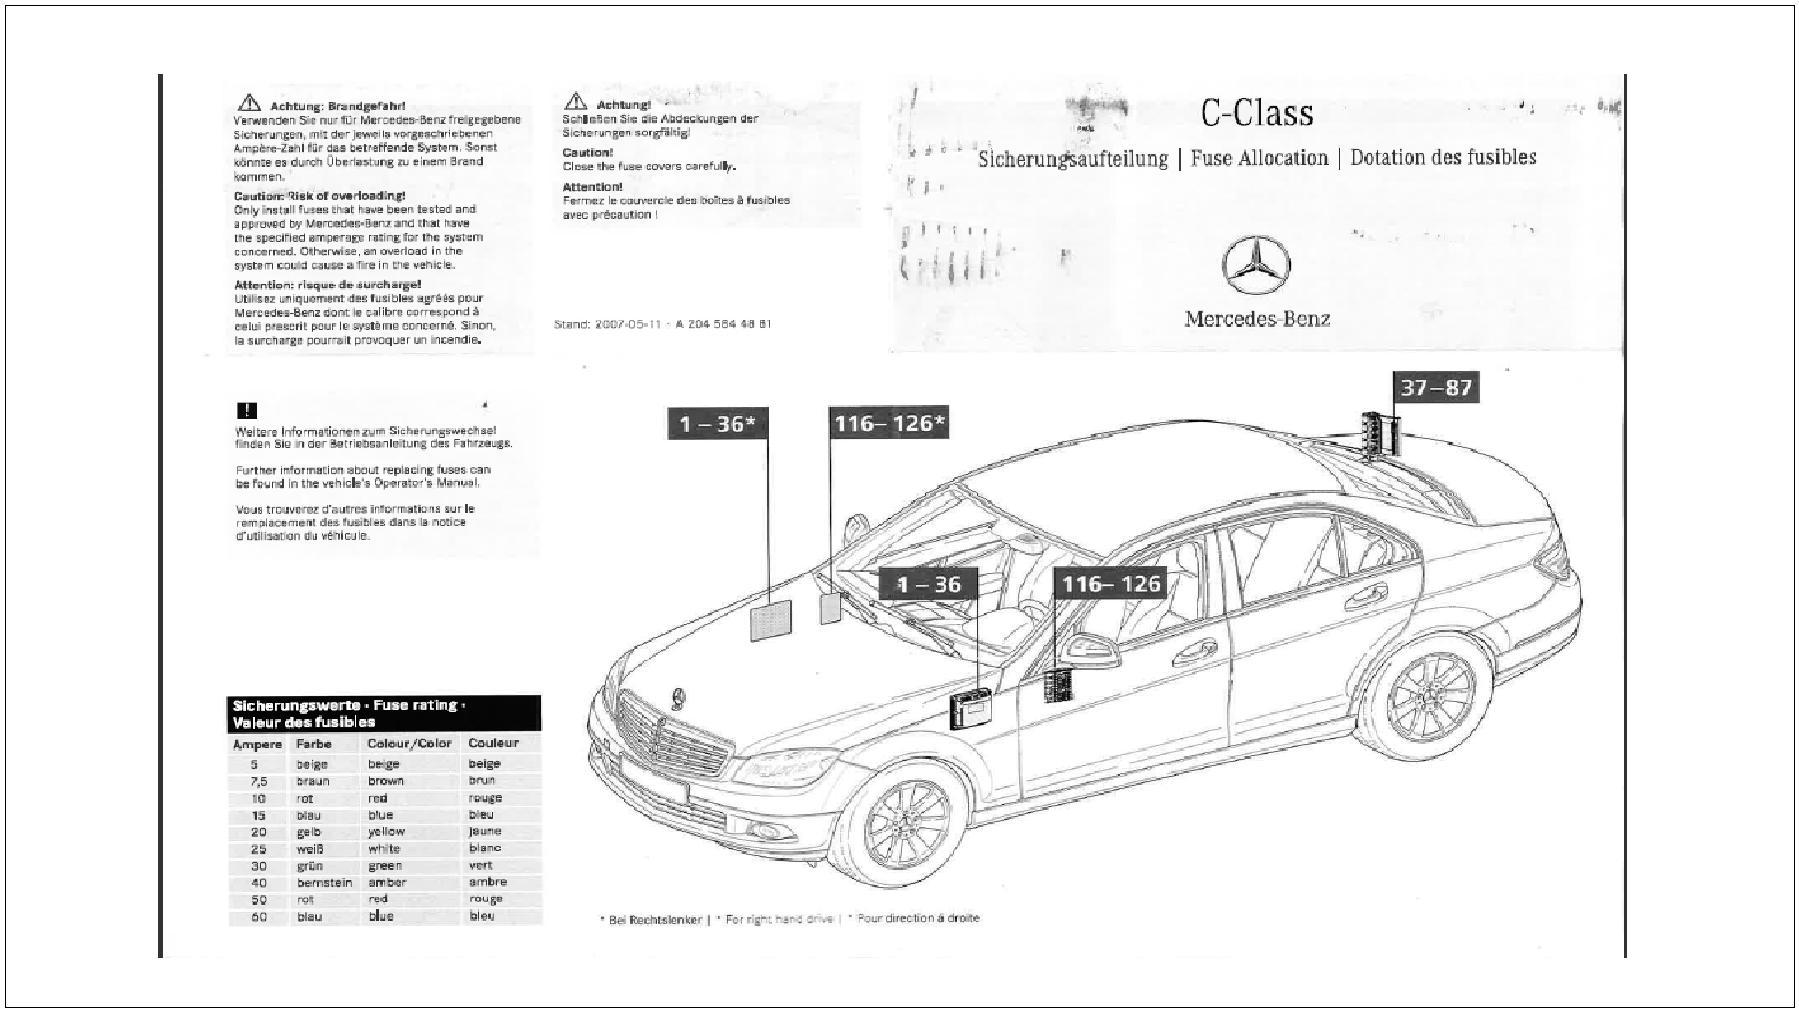 W204 fuse allocation chart (page 1).